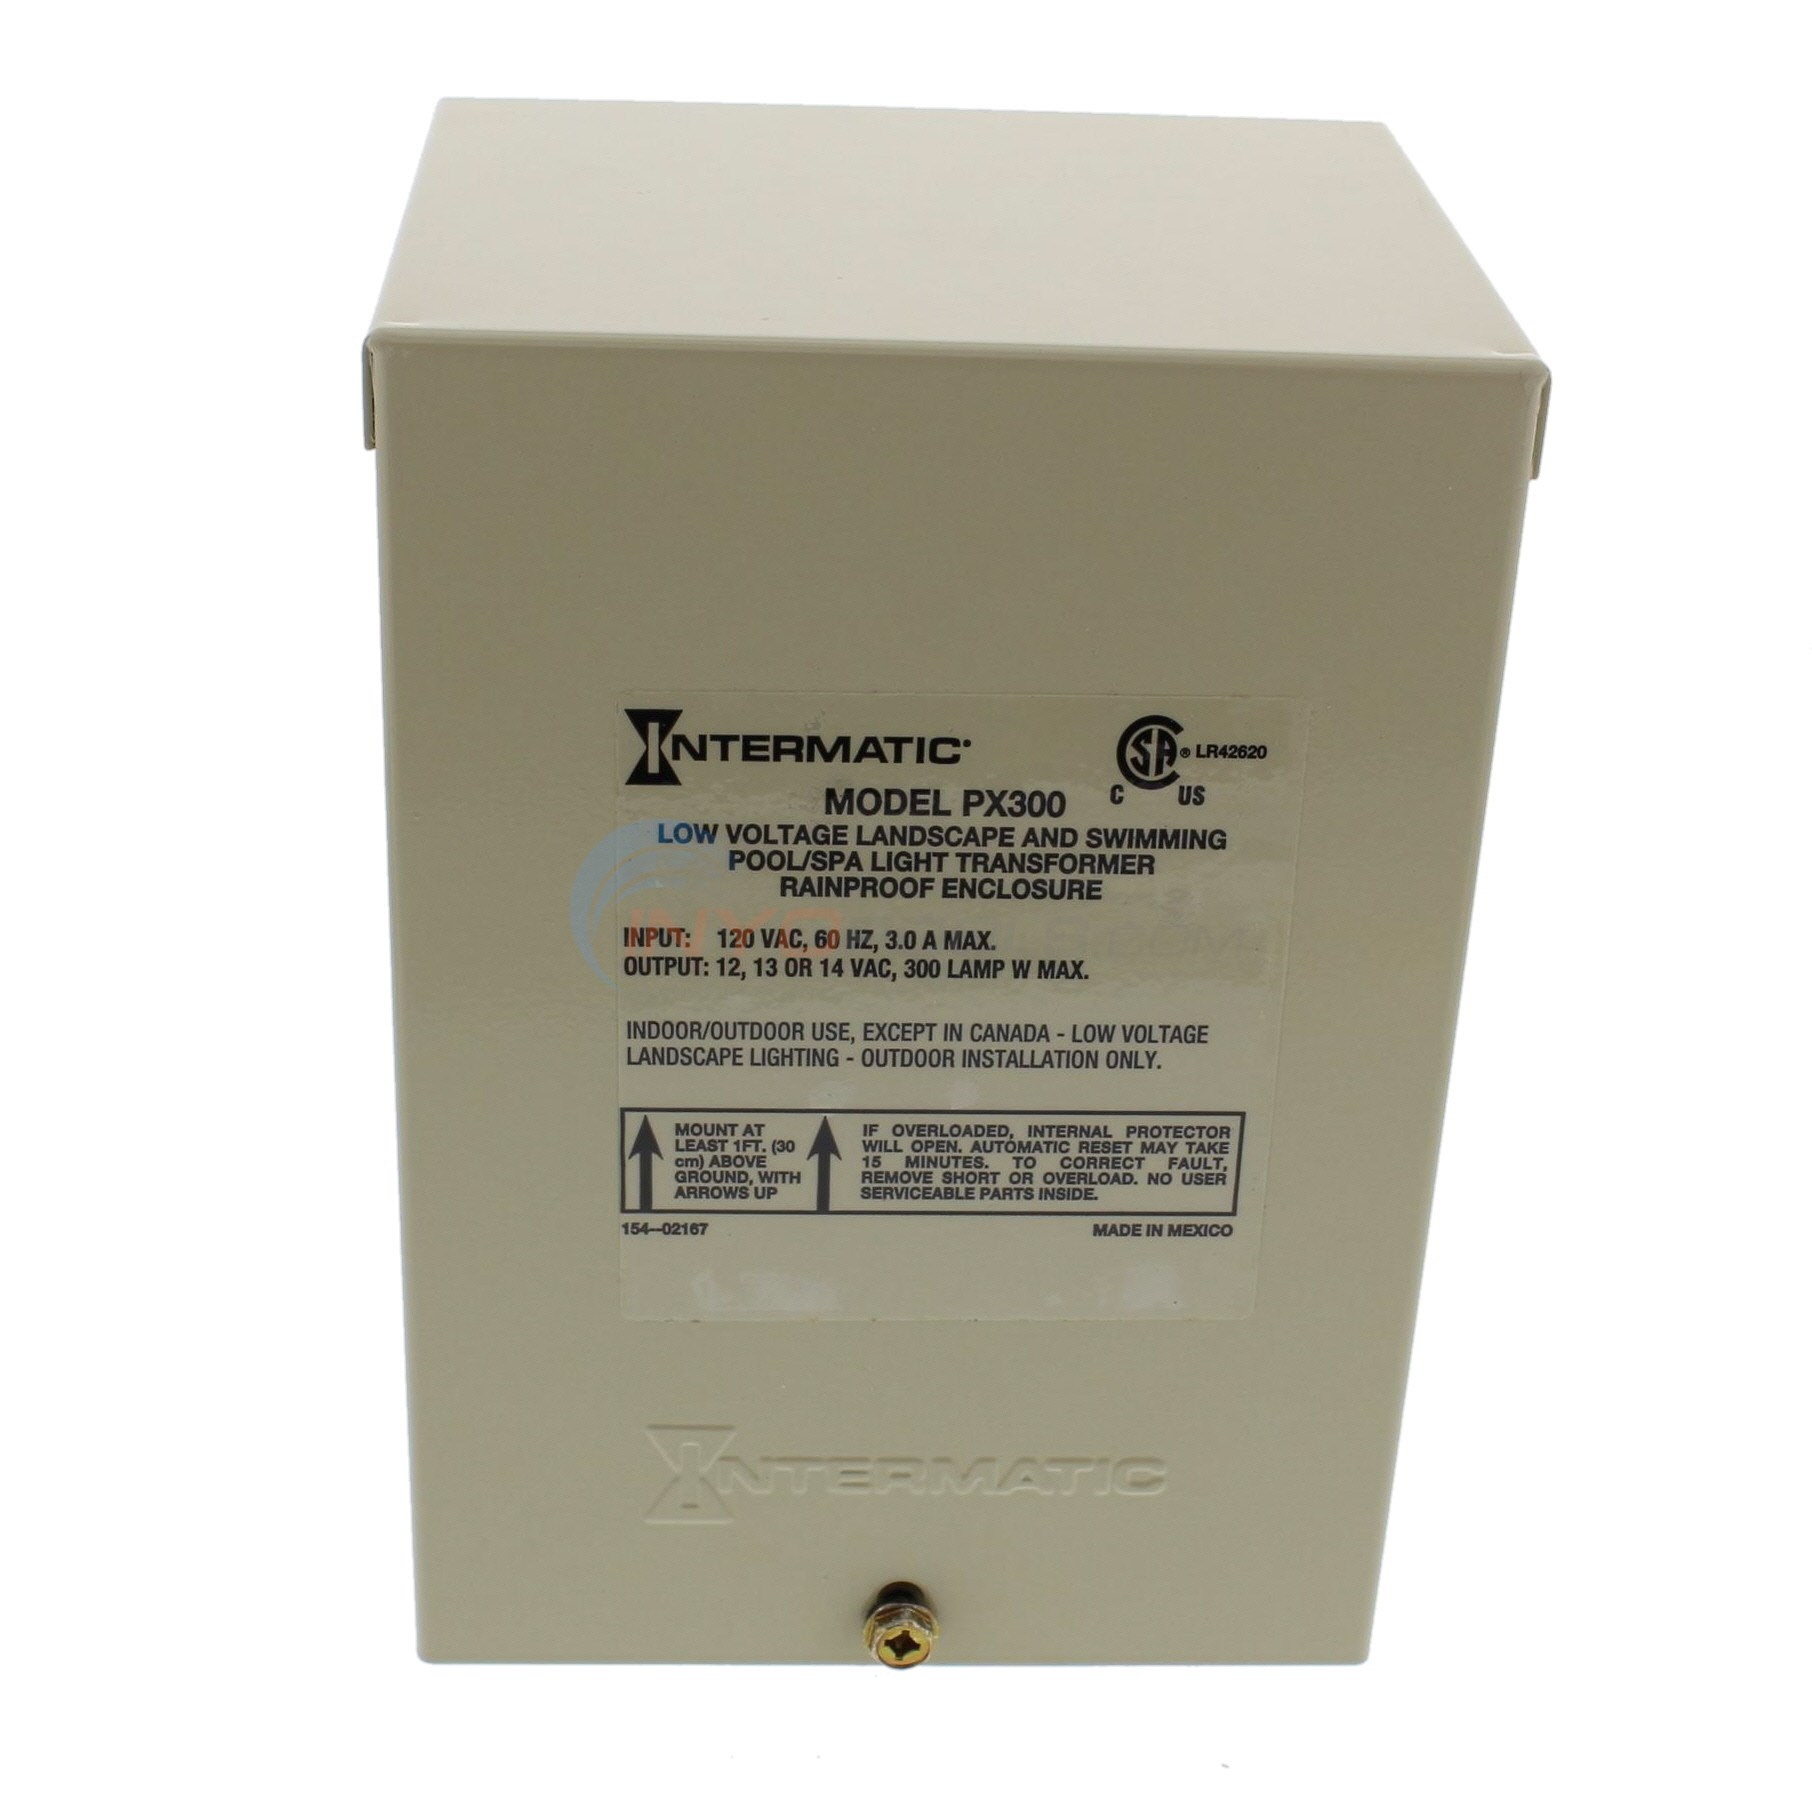 px30006?format=jpg&scale=both&anchor=middlecenter&autorotate=true&mode=pad&width=650&height=650 intermatic 300 watt transformer px300 inyopools com  at nearapp.co